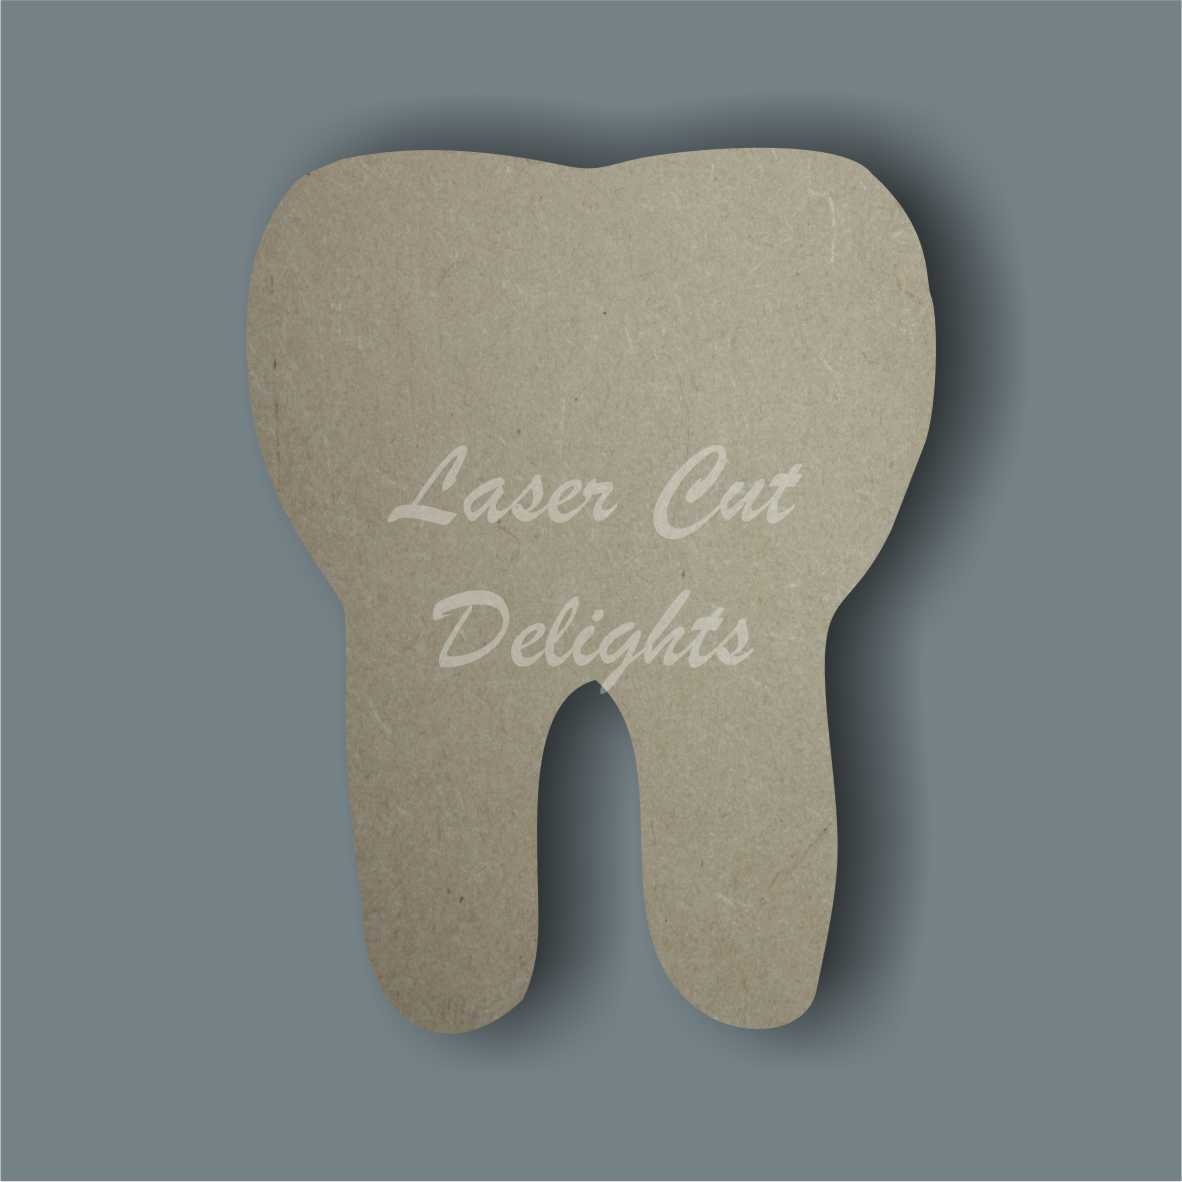 Teeth Tooth / Laser Cut Delights